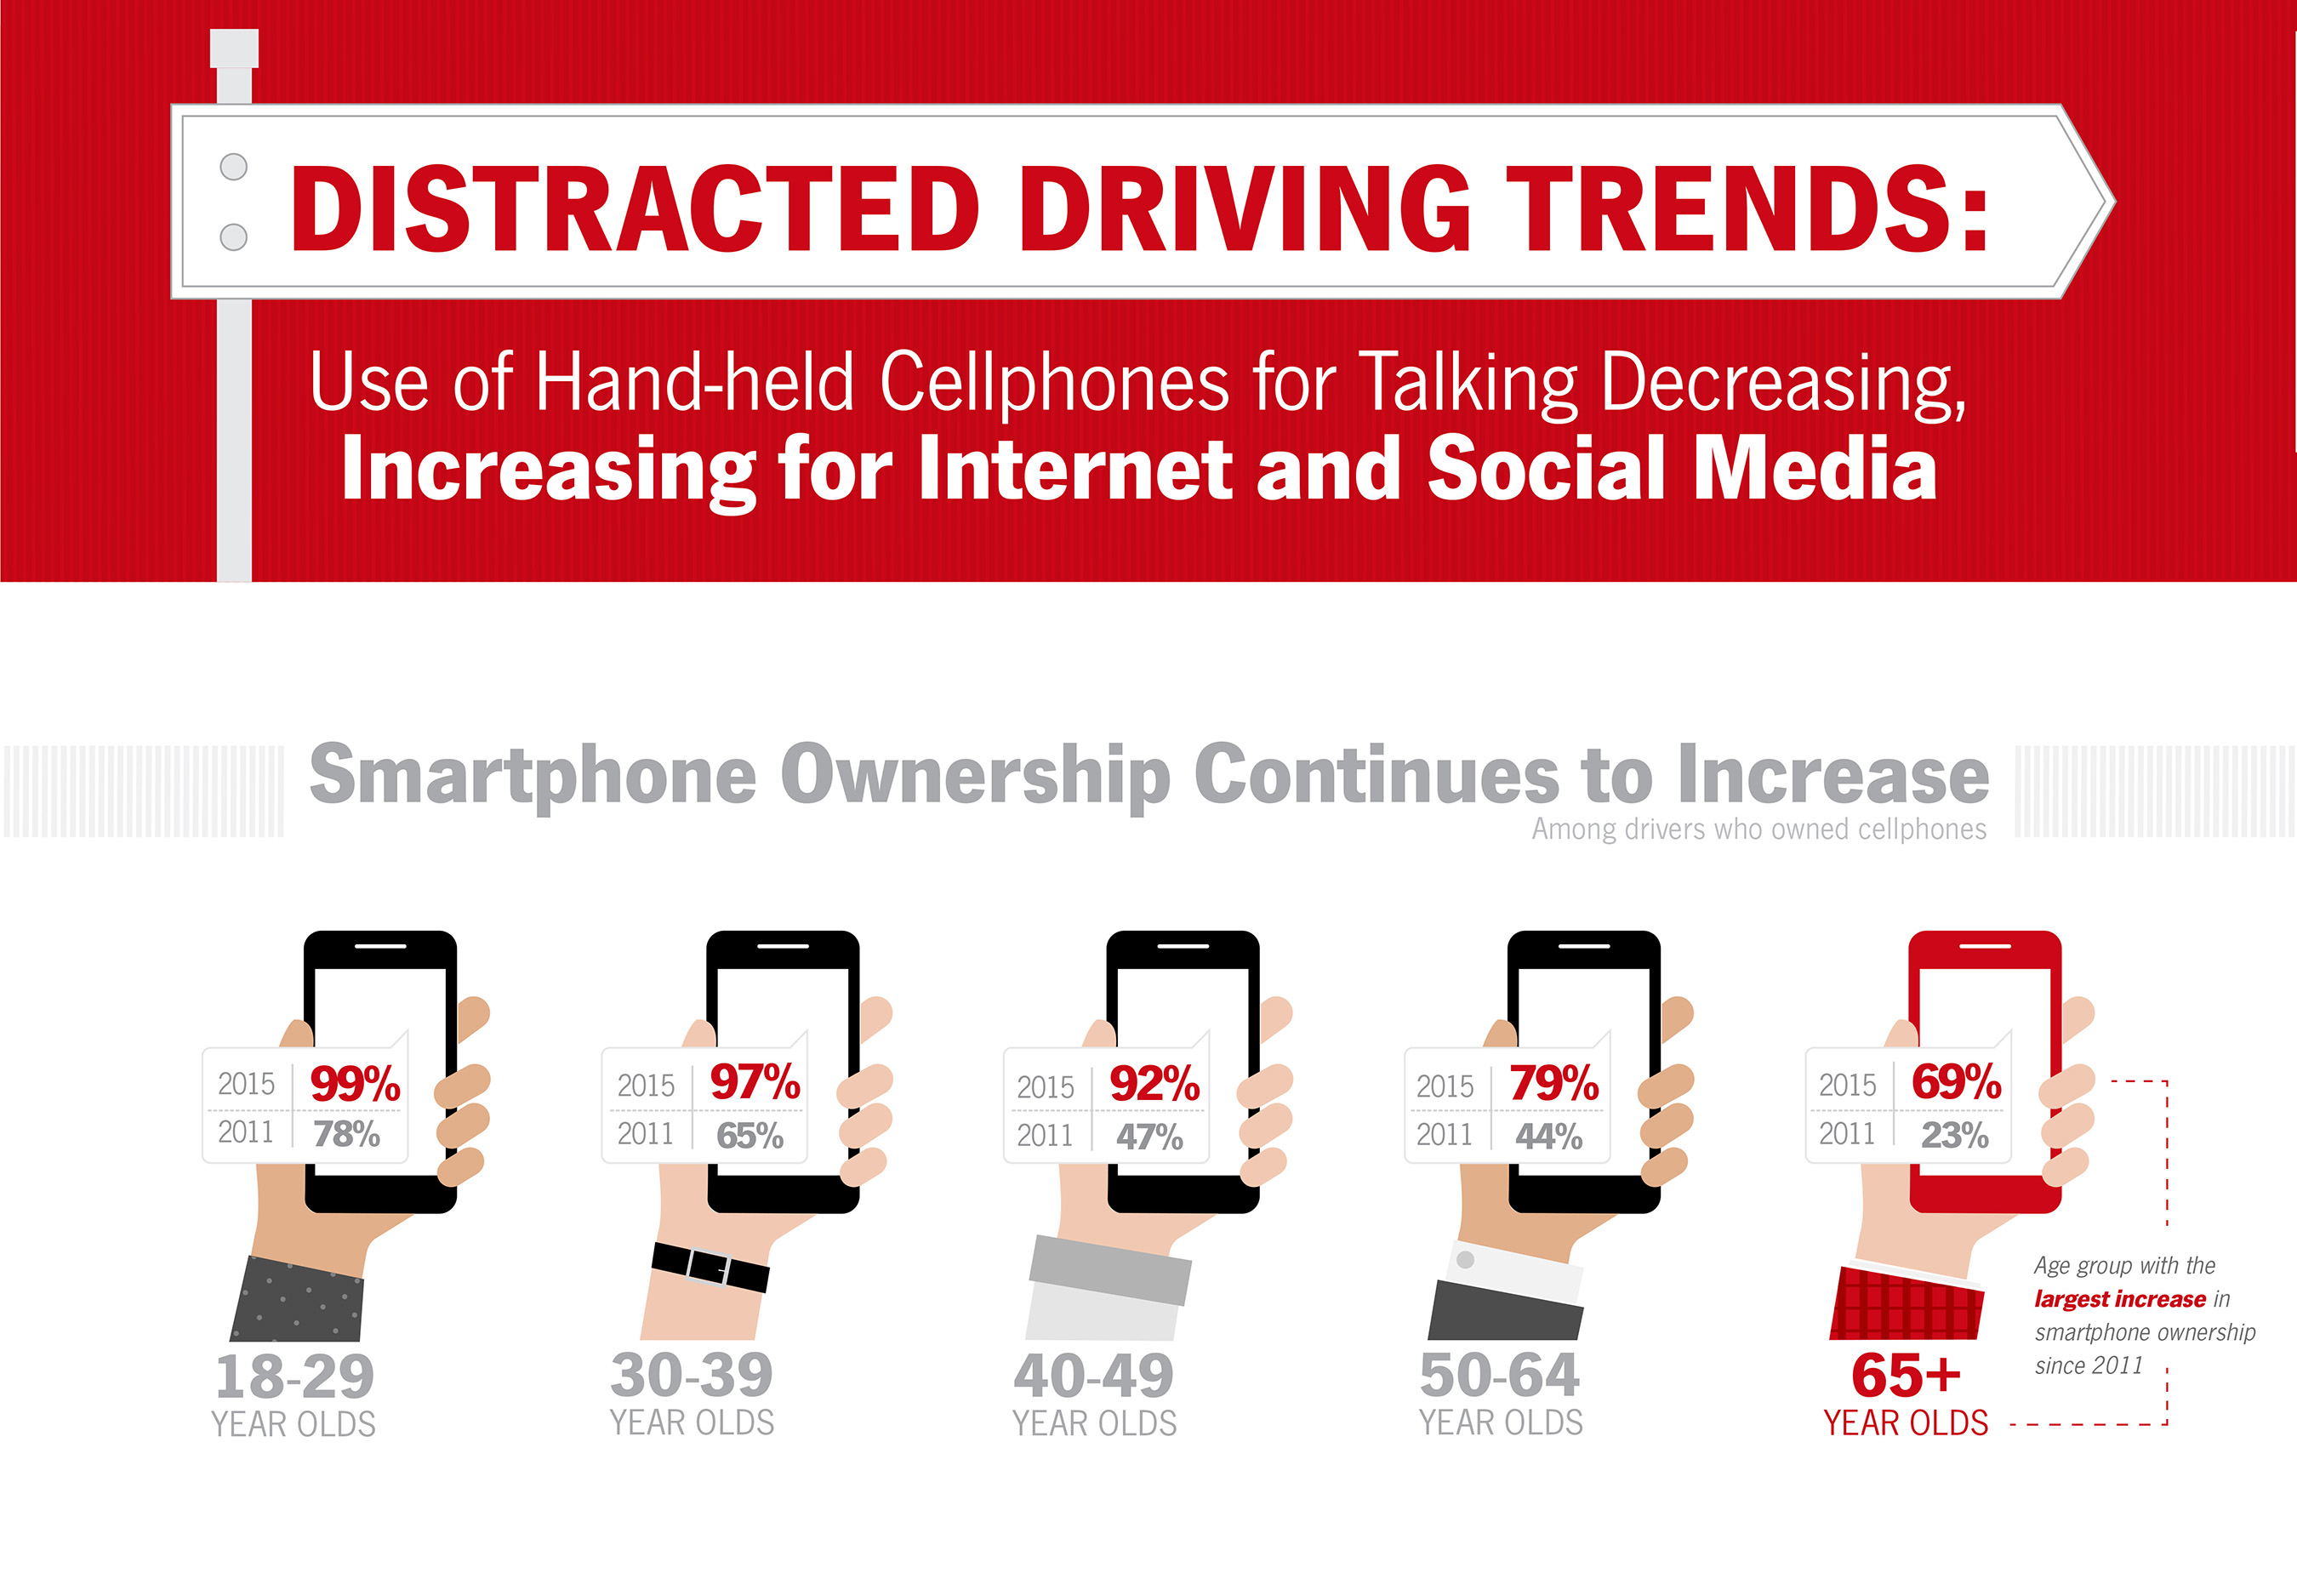 Popular Insurer Looks At Distracted Driving Trends  InsuranceNewsNet